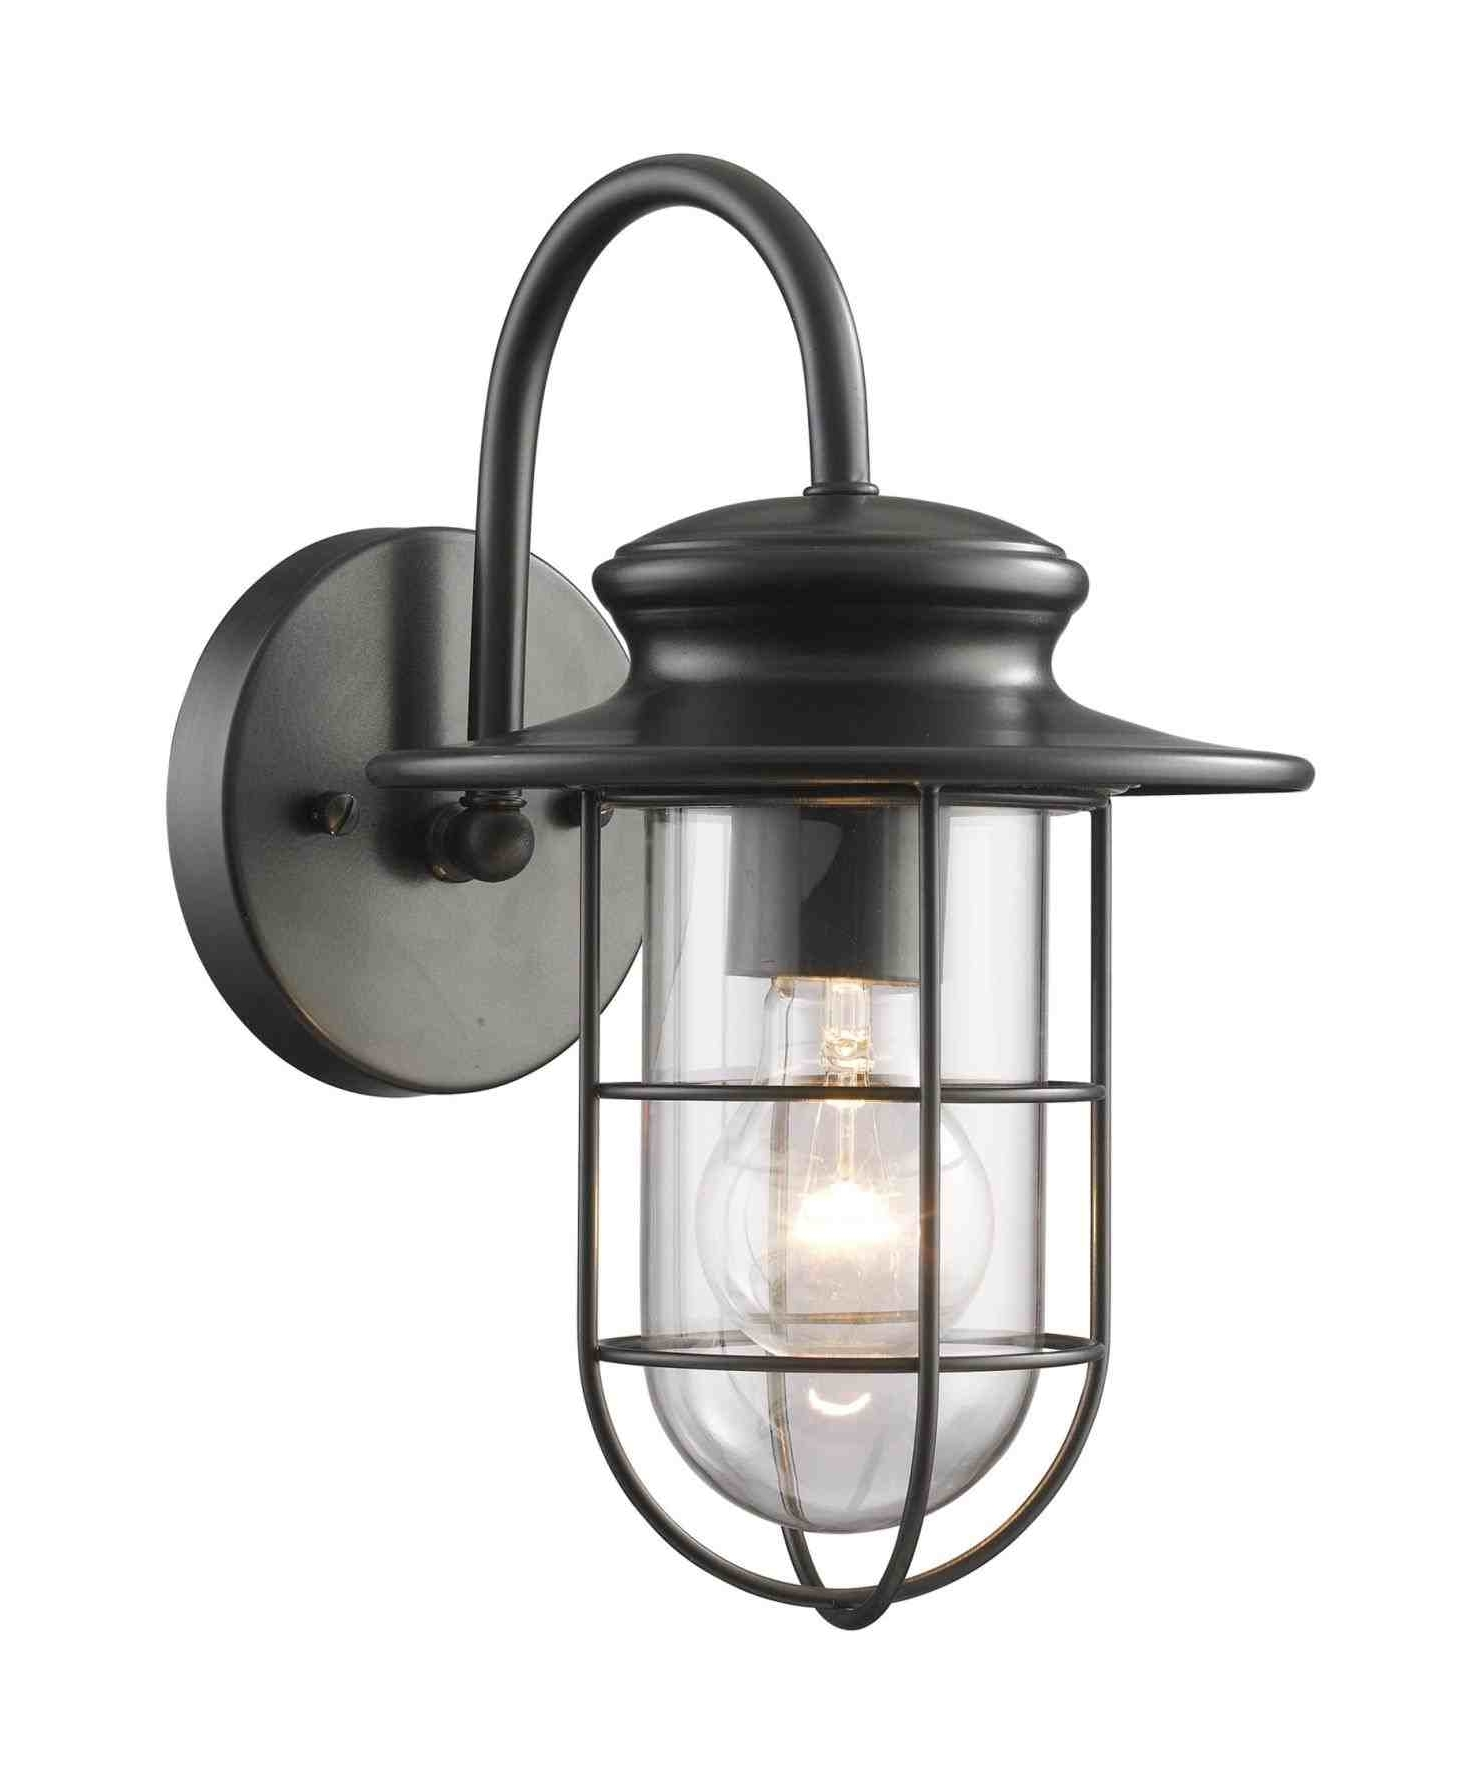 Outdoor Wall Lighting With Photocell Intended For Newest Lantern Rhetownncountrycom Outdoor Outdoor Wall Lights With (View 14 of 20)